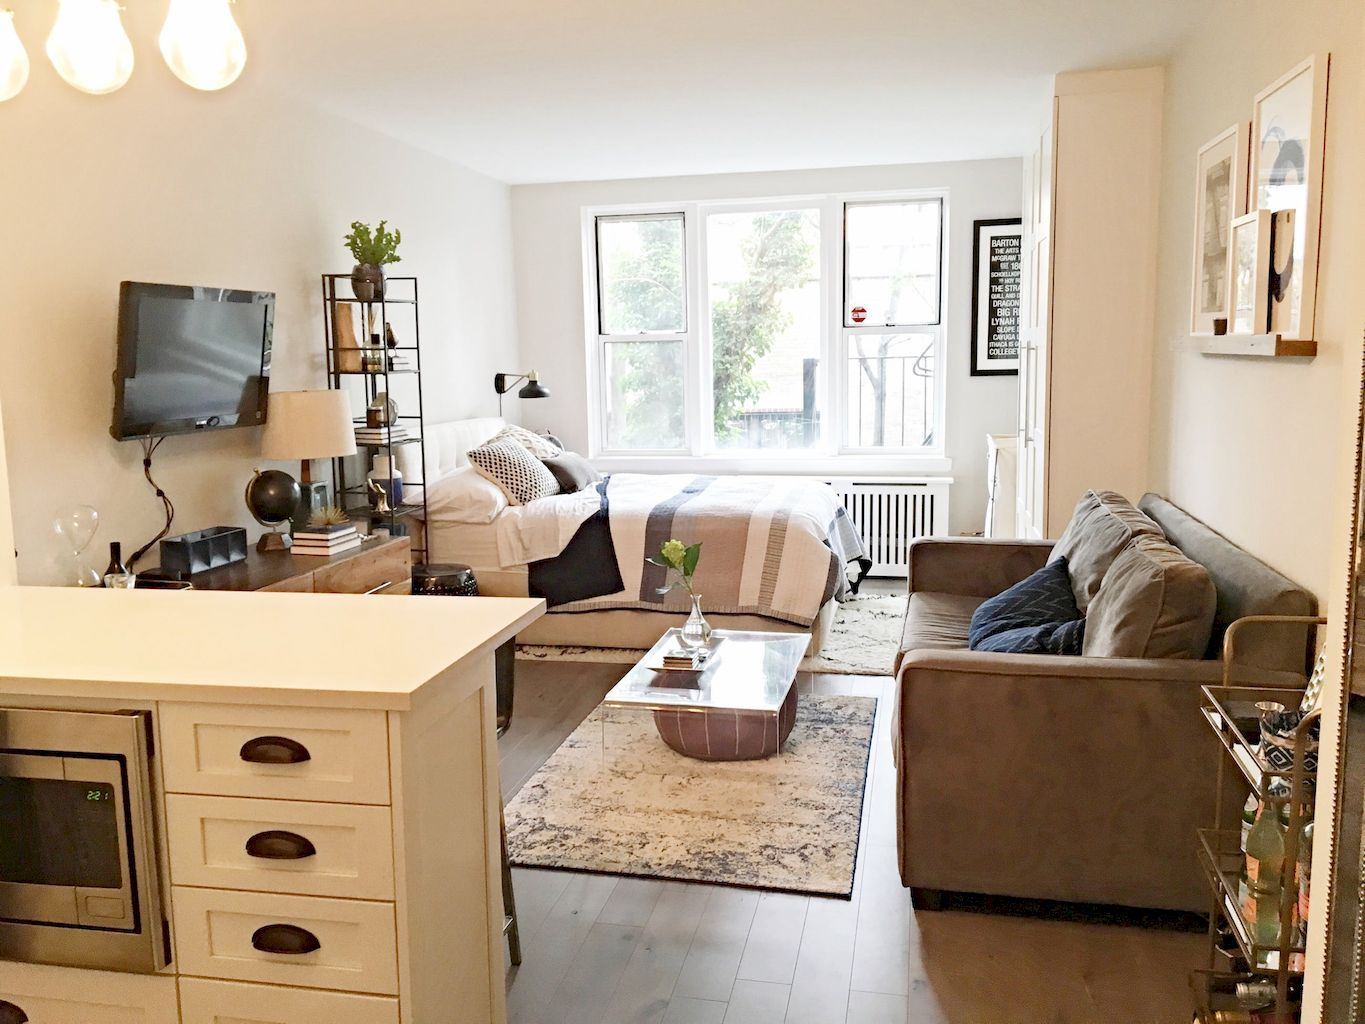 Awesome 95 Couples Apartment Decorating Ideas on A Budget https ...